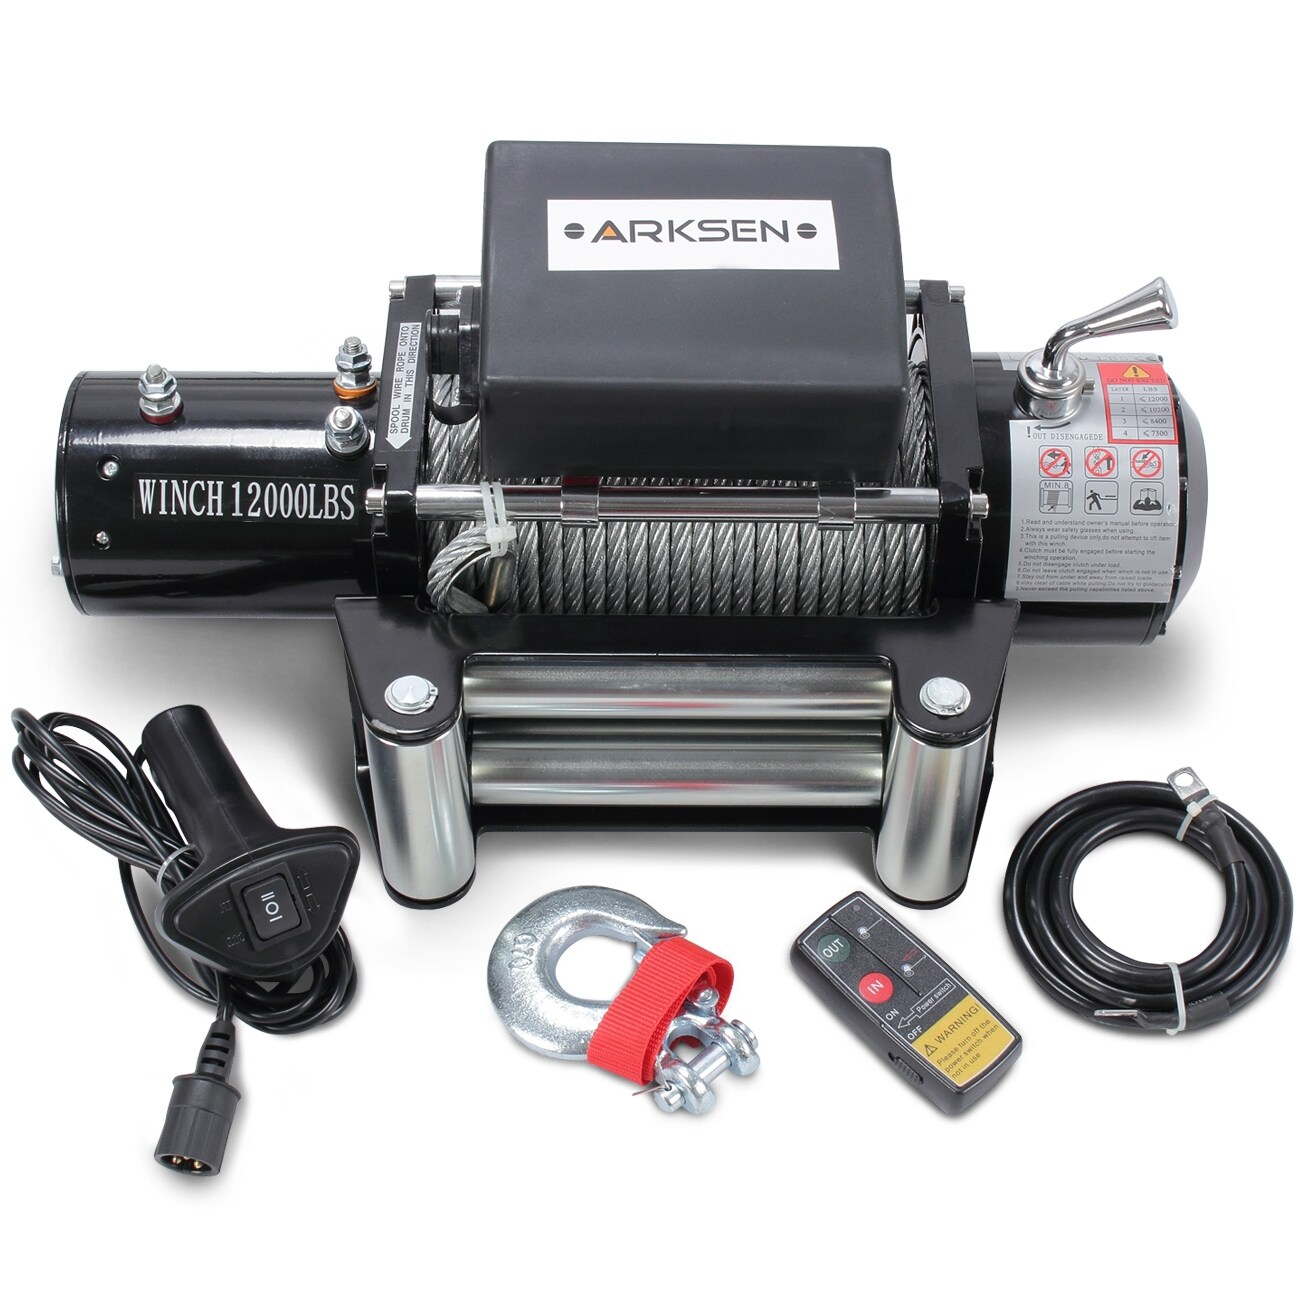 hight resolution of arksen 12 volt electric recovery winch with remote control towing for truck suv atv trailers 12000lbs capacity black